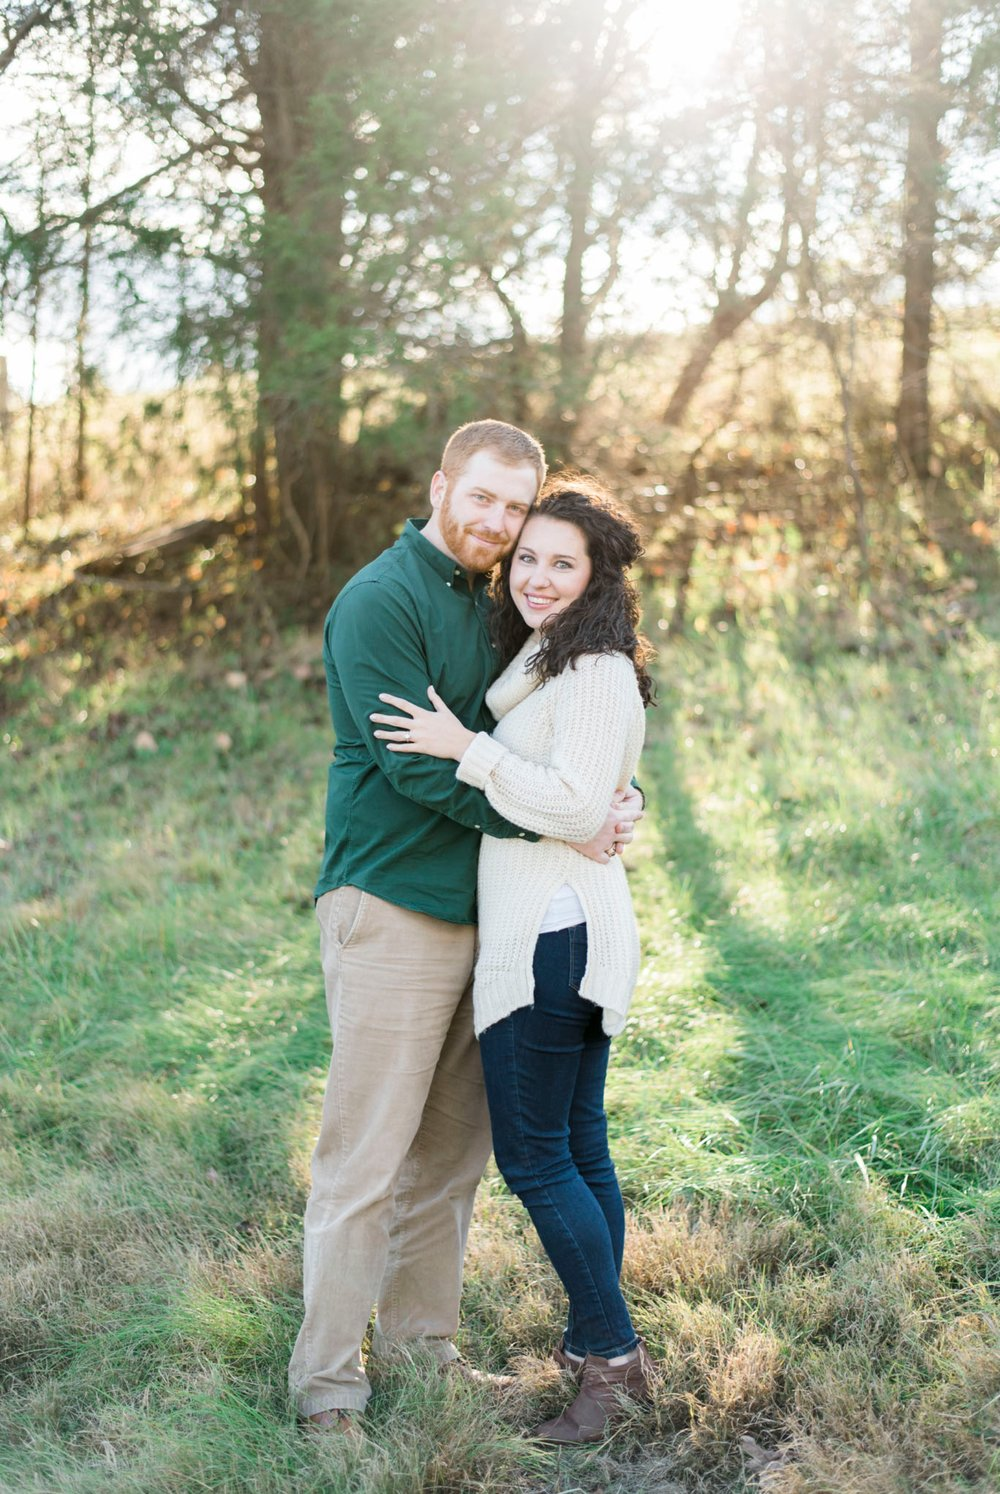 SorellaFarms_EngagementSession_VirginiaweddingPhotographer 5.jpg